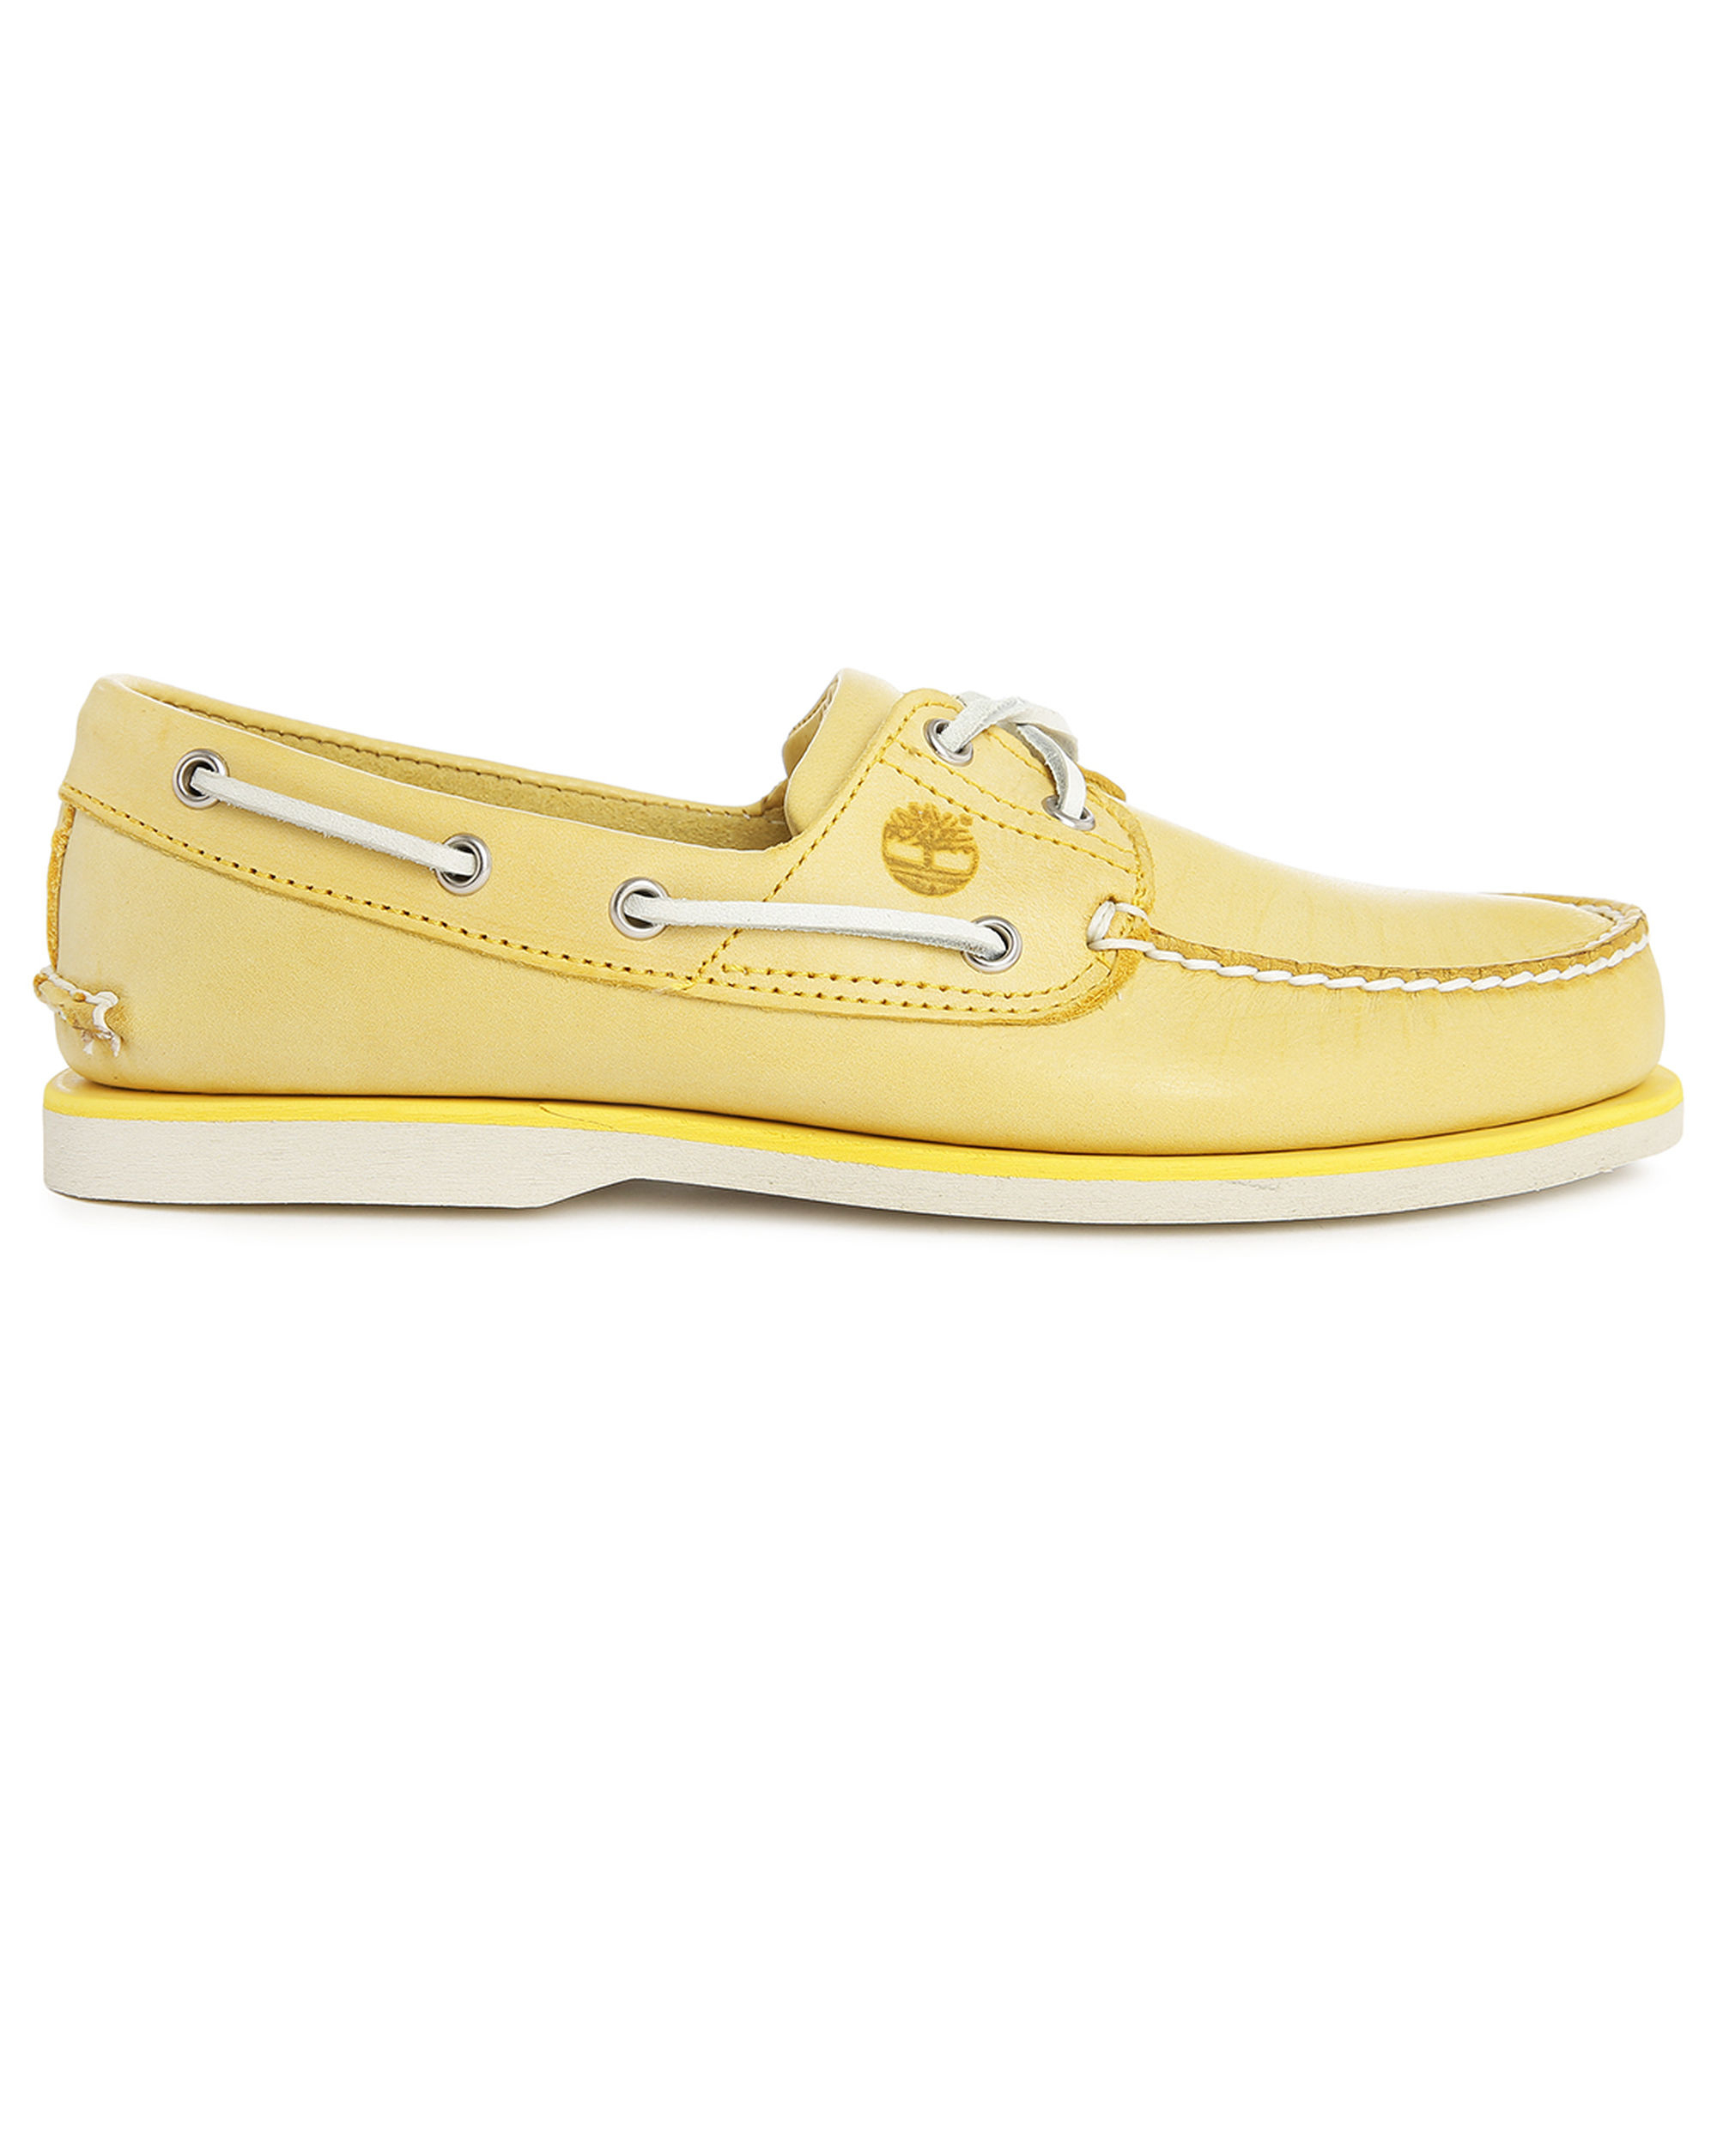 Timberland Blue Yellow Sole Boat Shoe